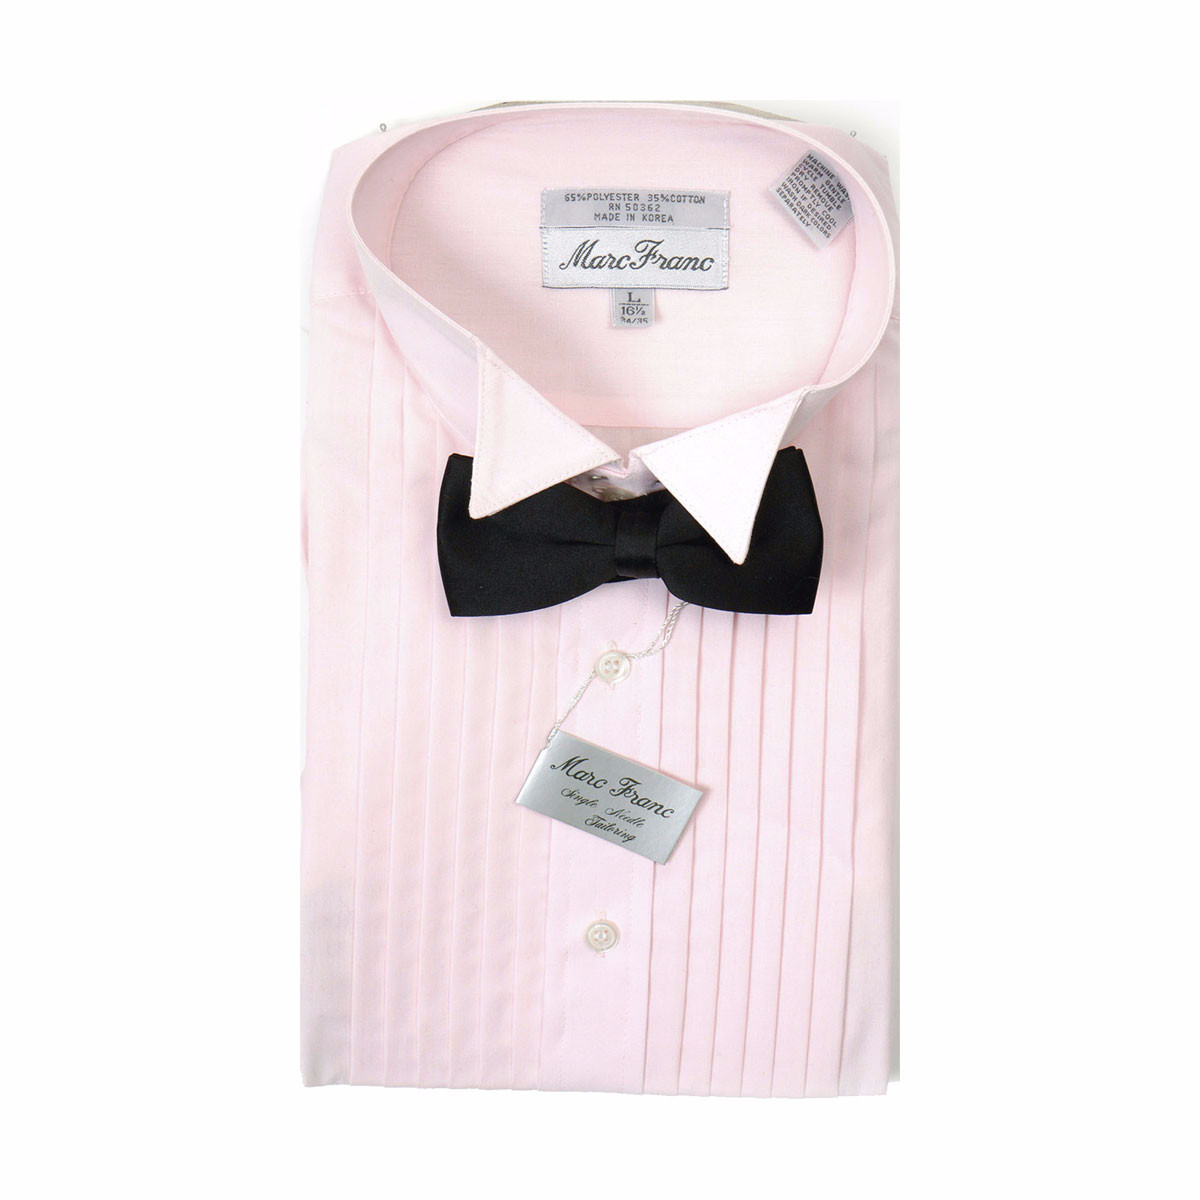 Mens Pink Tuxedo Shirt Wing Collar 14 Pleats 1600 Ethic